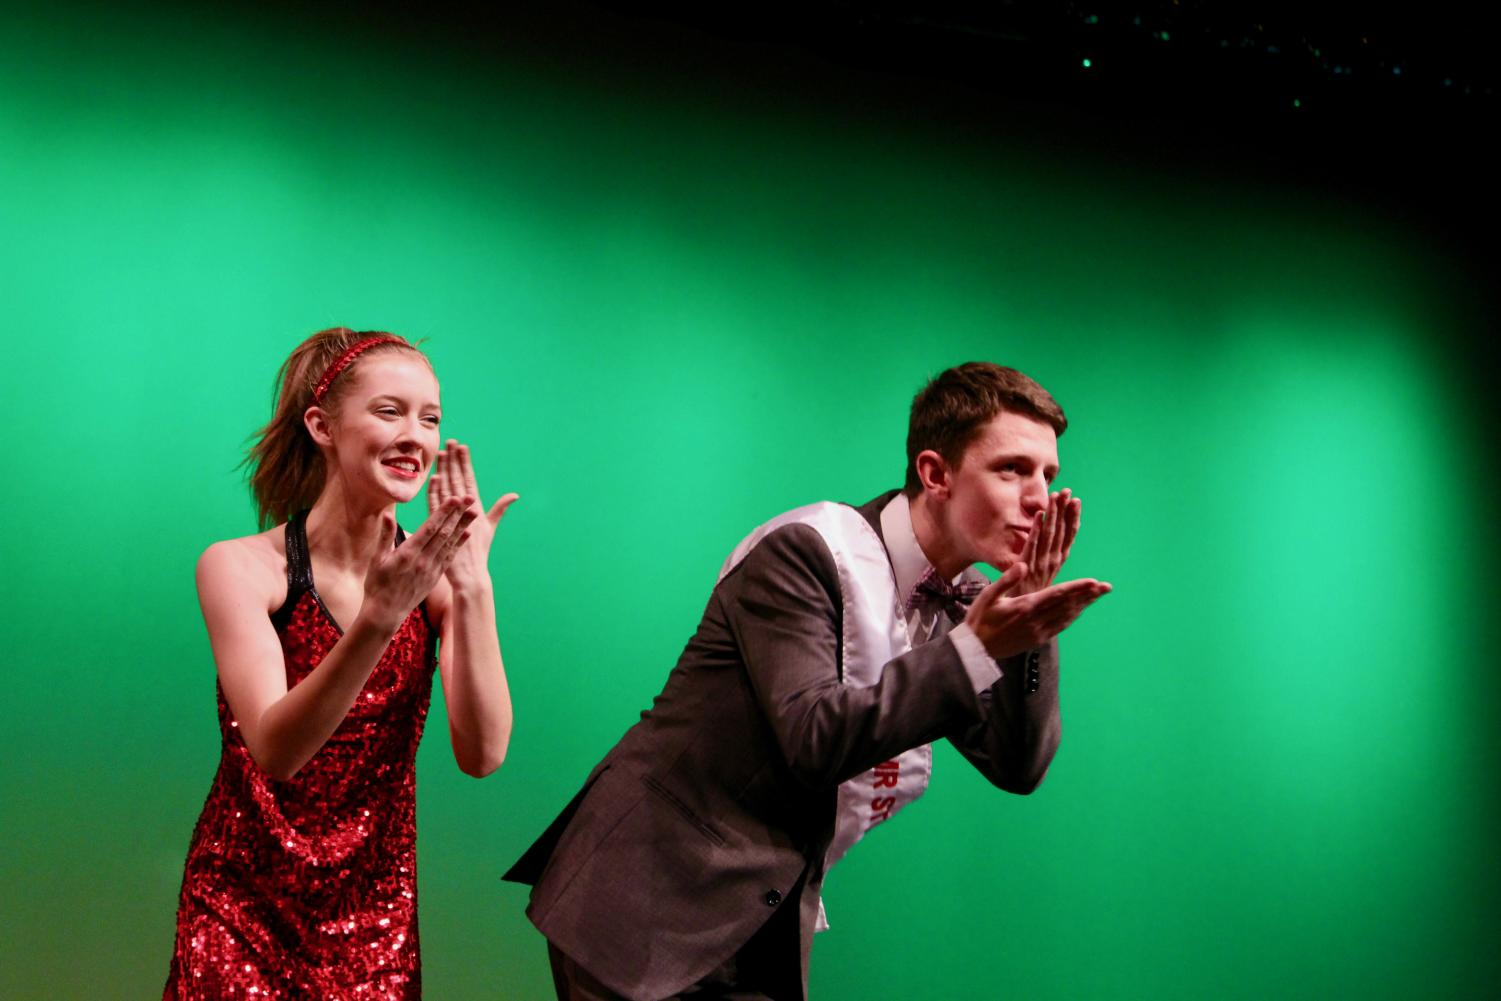 Lindsay+Kocher%2C+sophomore%2C+and+Tim+Knight%2C+senior%2C+blow+kisses+to+the+crowd+during+the+formal+wear+segment.